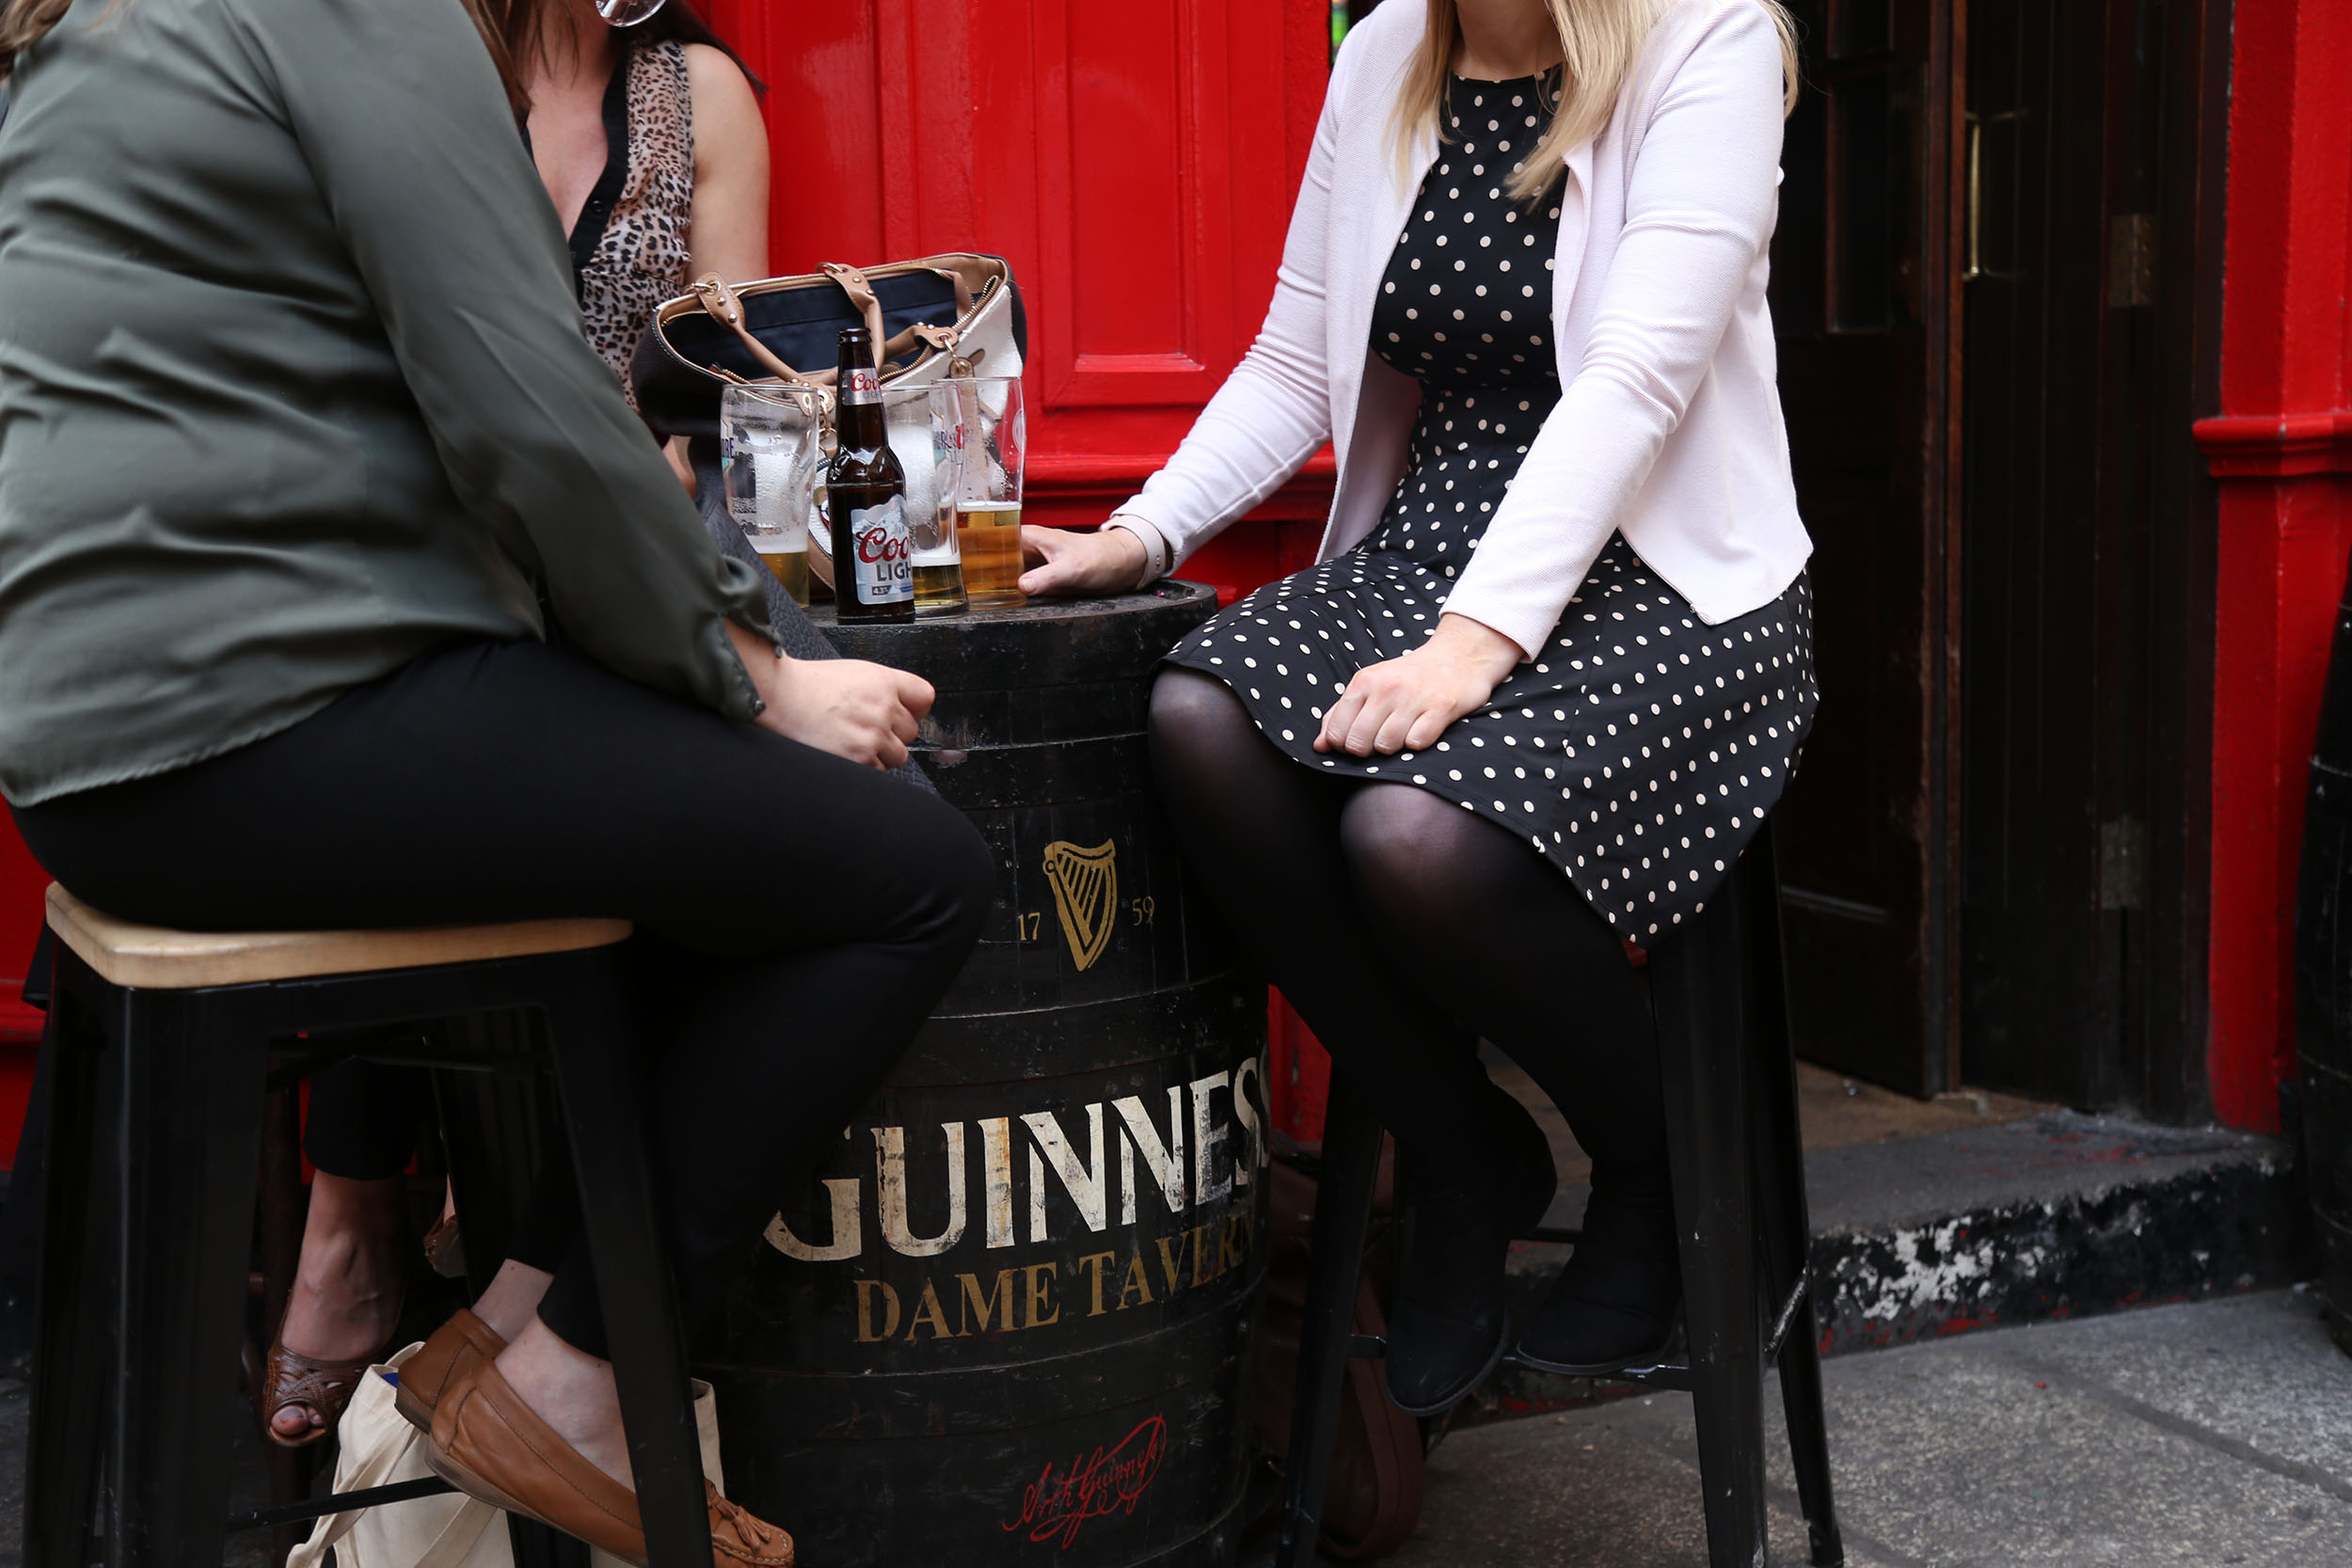 Is one drink too many? Ireland to offer alcohol tests to pregnant women